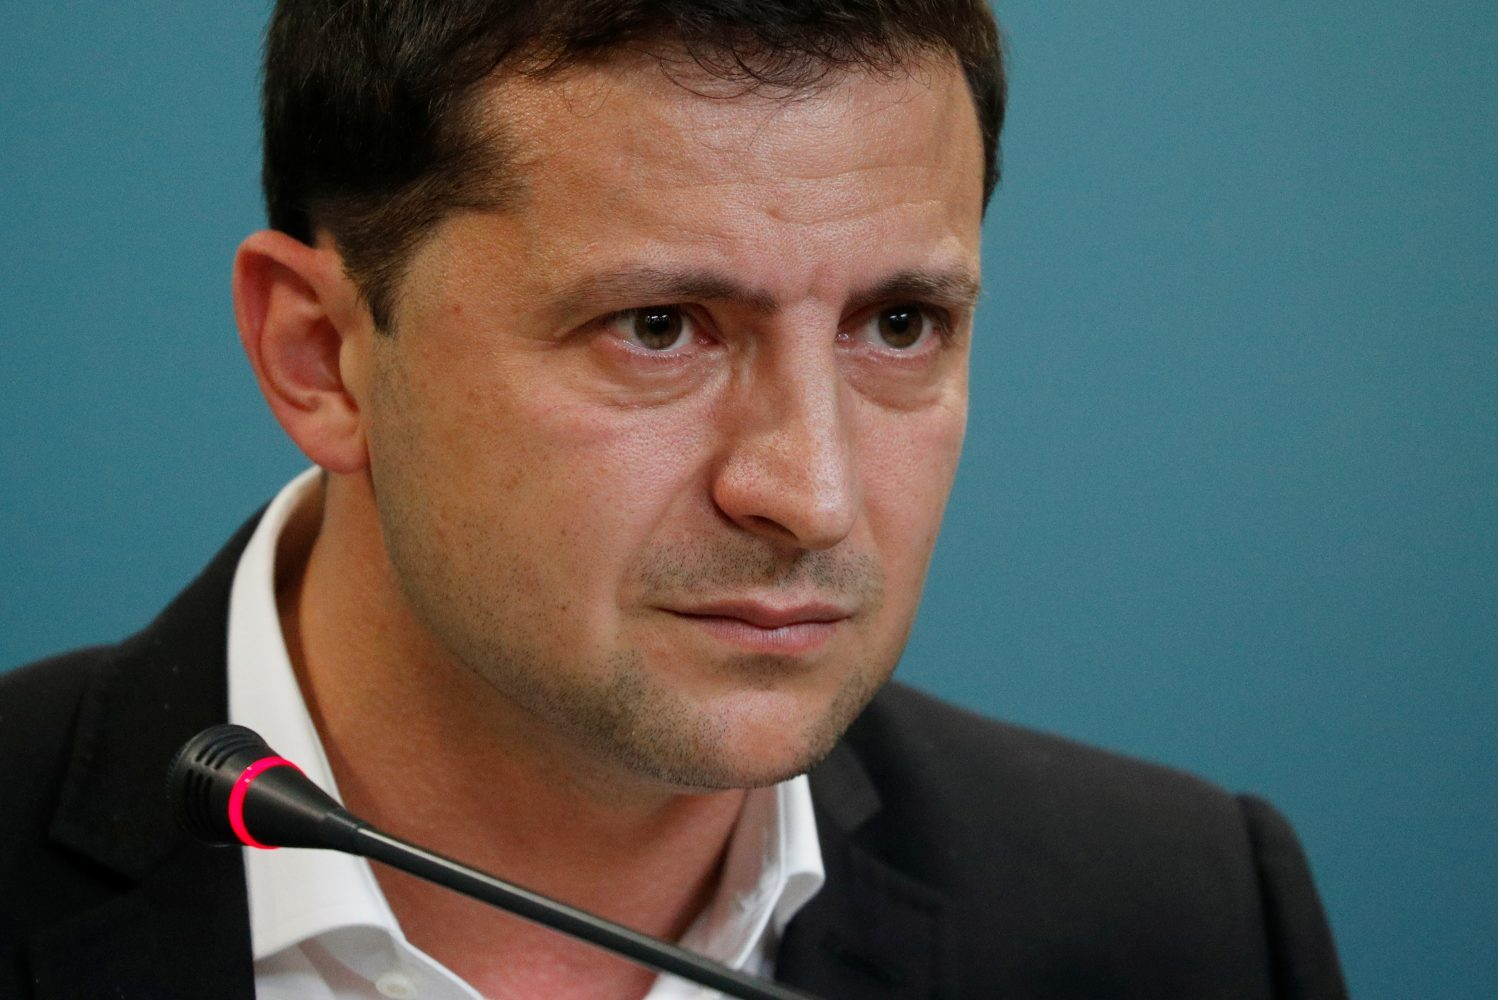 Hard questions for Mr. Zelenskyy